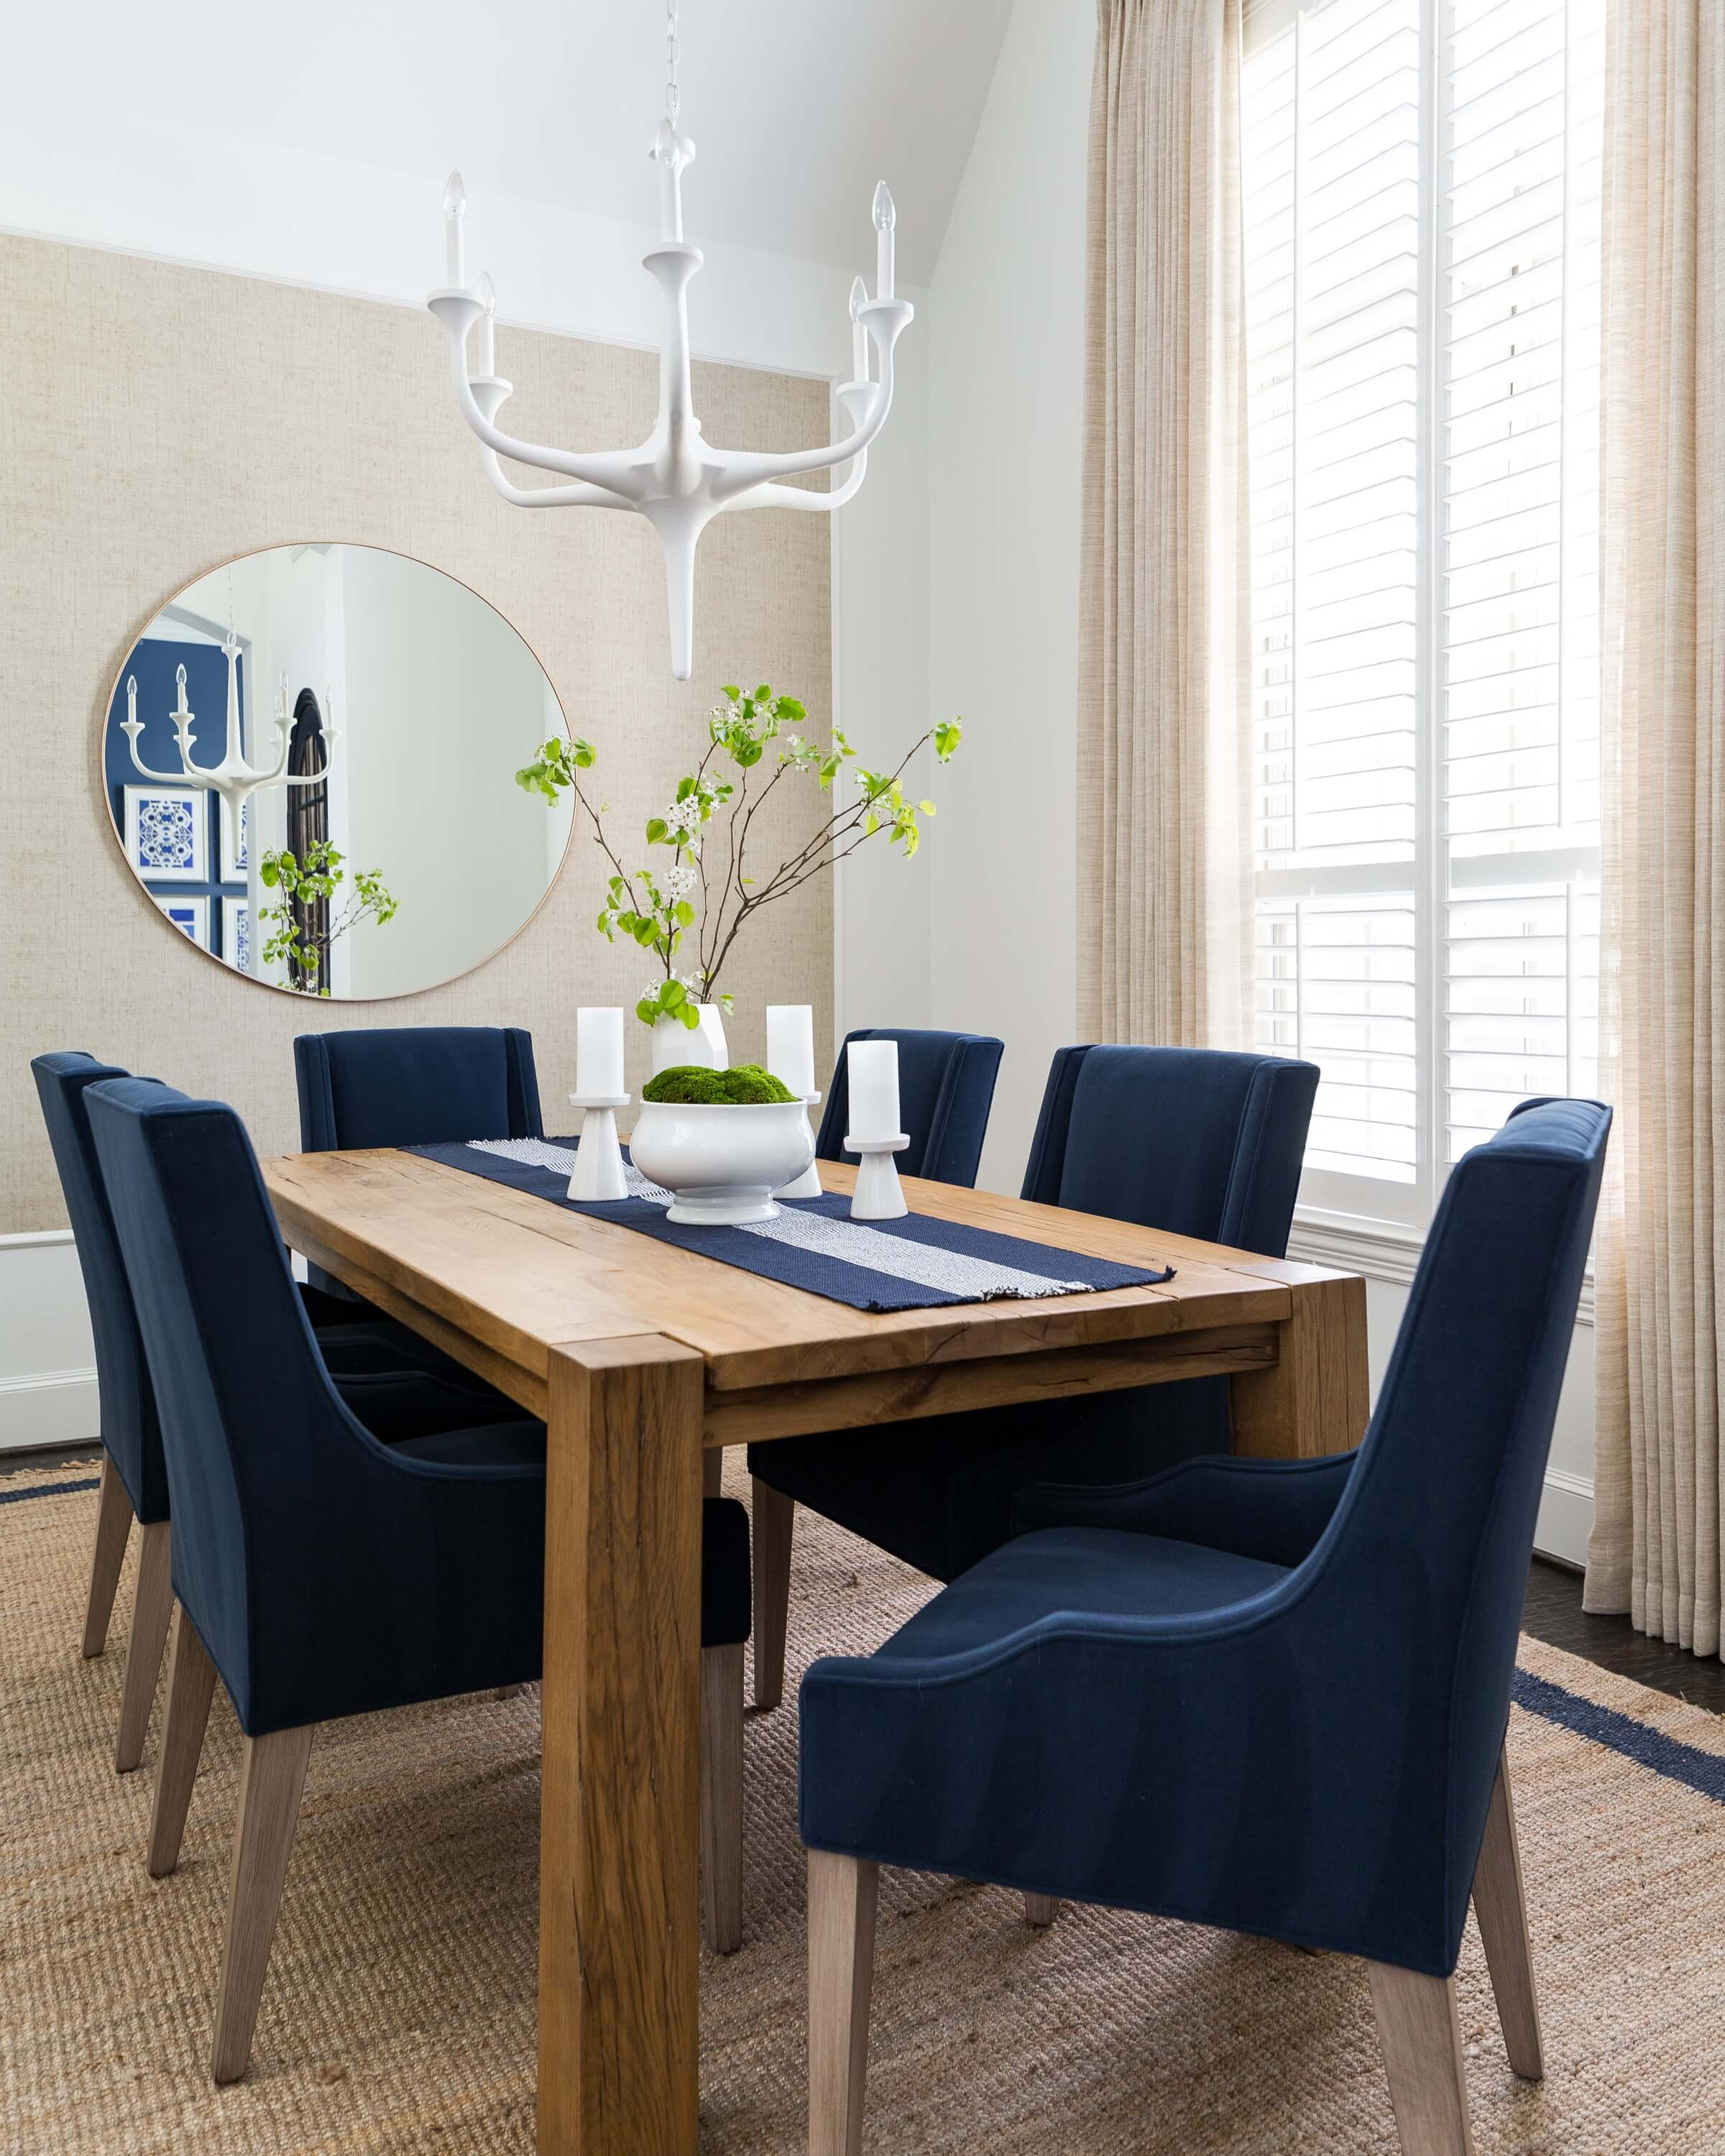 This dining room with sheer, textural draperies create warmth and add height to this dining room. Carla Aston, Designer | Colleen Scott, Photographer #windowtreatment #drapery #sheerdrapery #diningroom